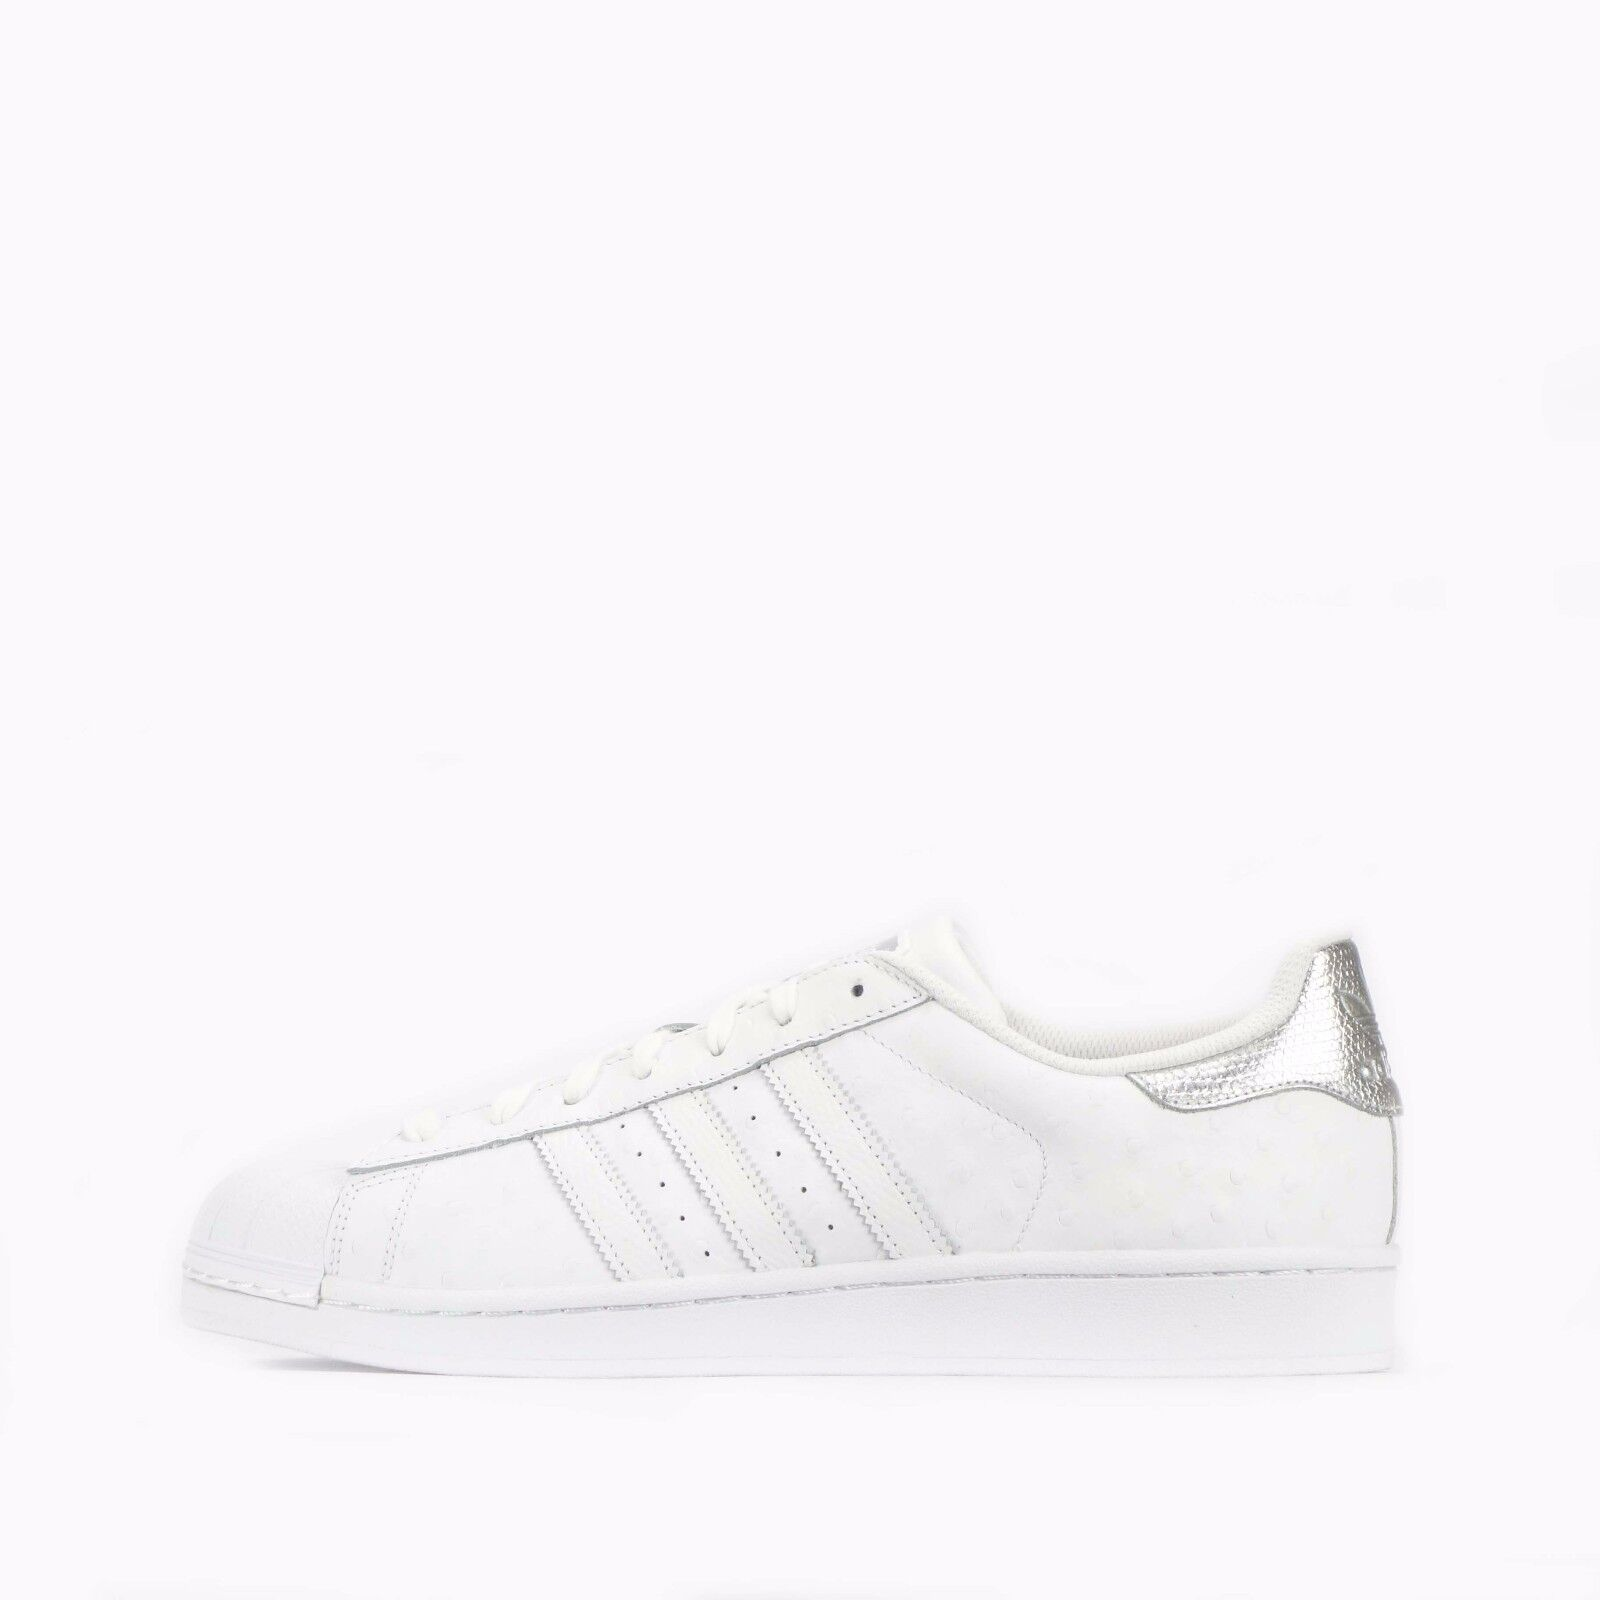 adidas Toe Originals Superstar Shell Toe adidas Hombre's Zapatos in Blanco/Plata be2d7f